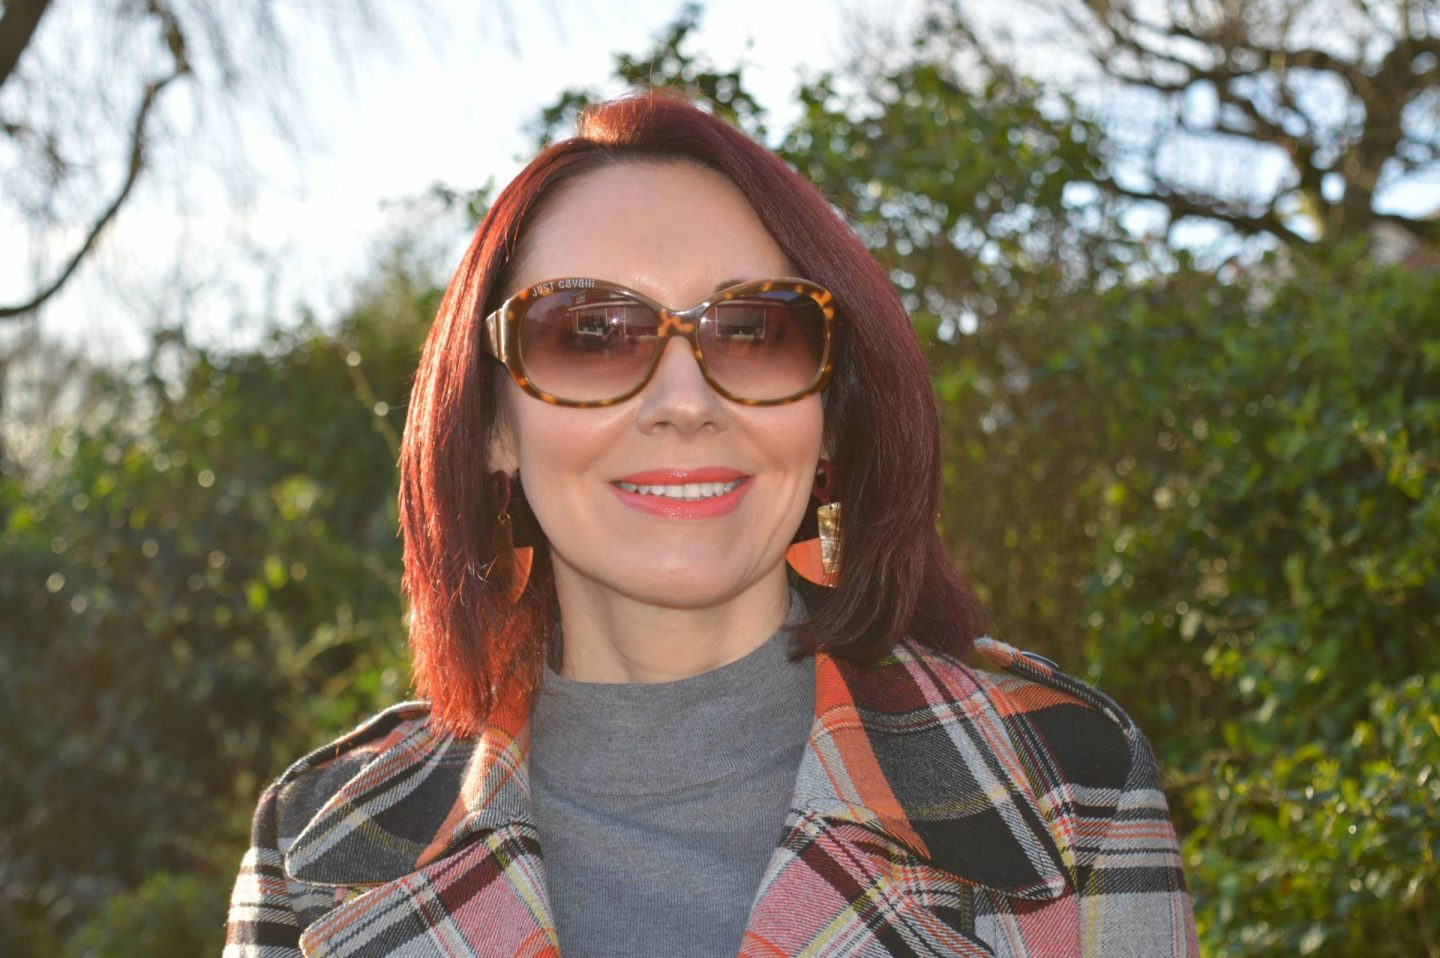 Just Cavalli sunglasses, French Connection tartan jacket